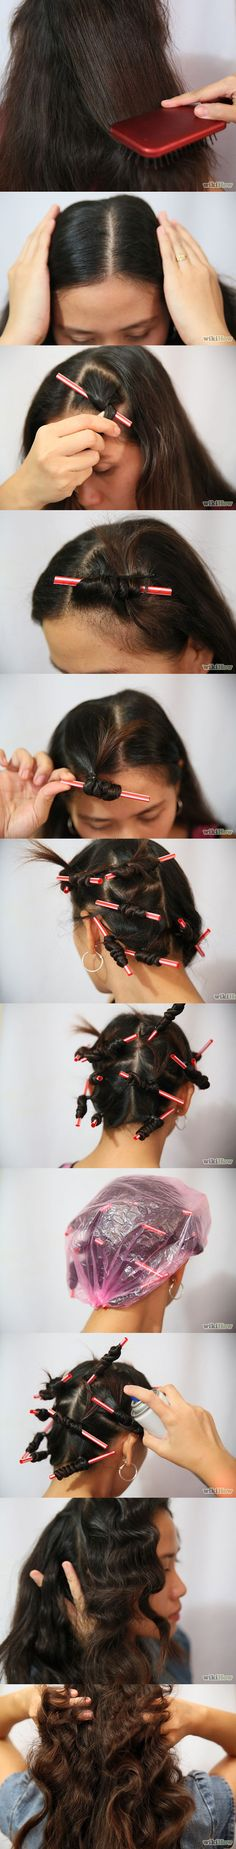 The Best Hair Tutorials For Curly Hairstyles 5 Ways To Make Your Hair Curly With No Heat